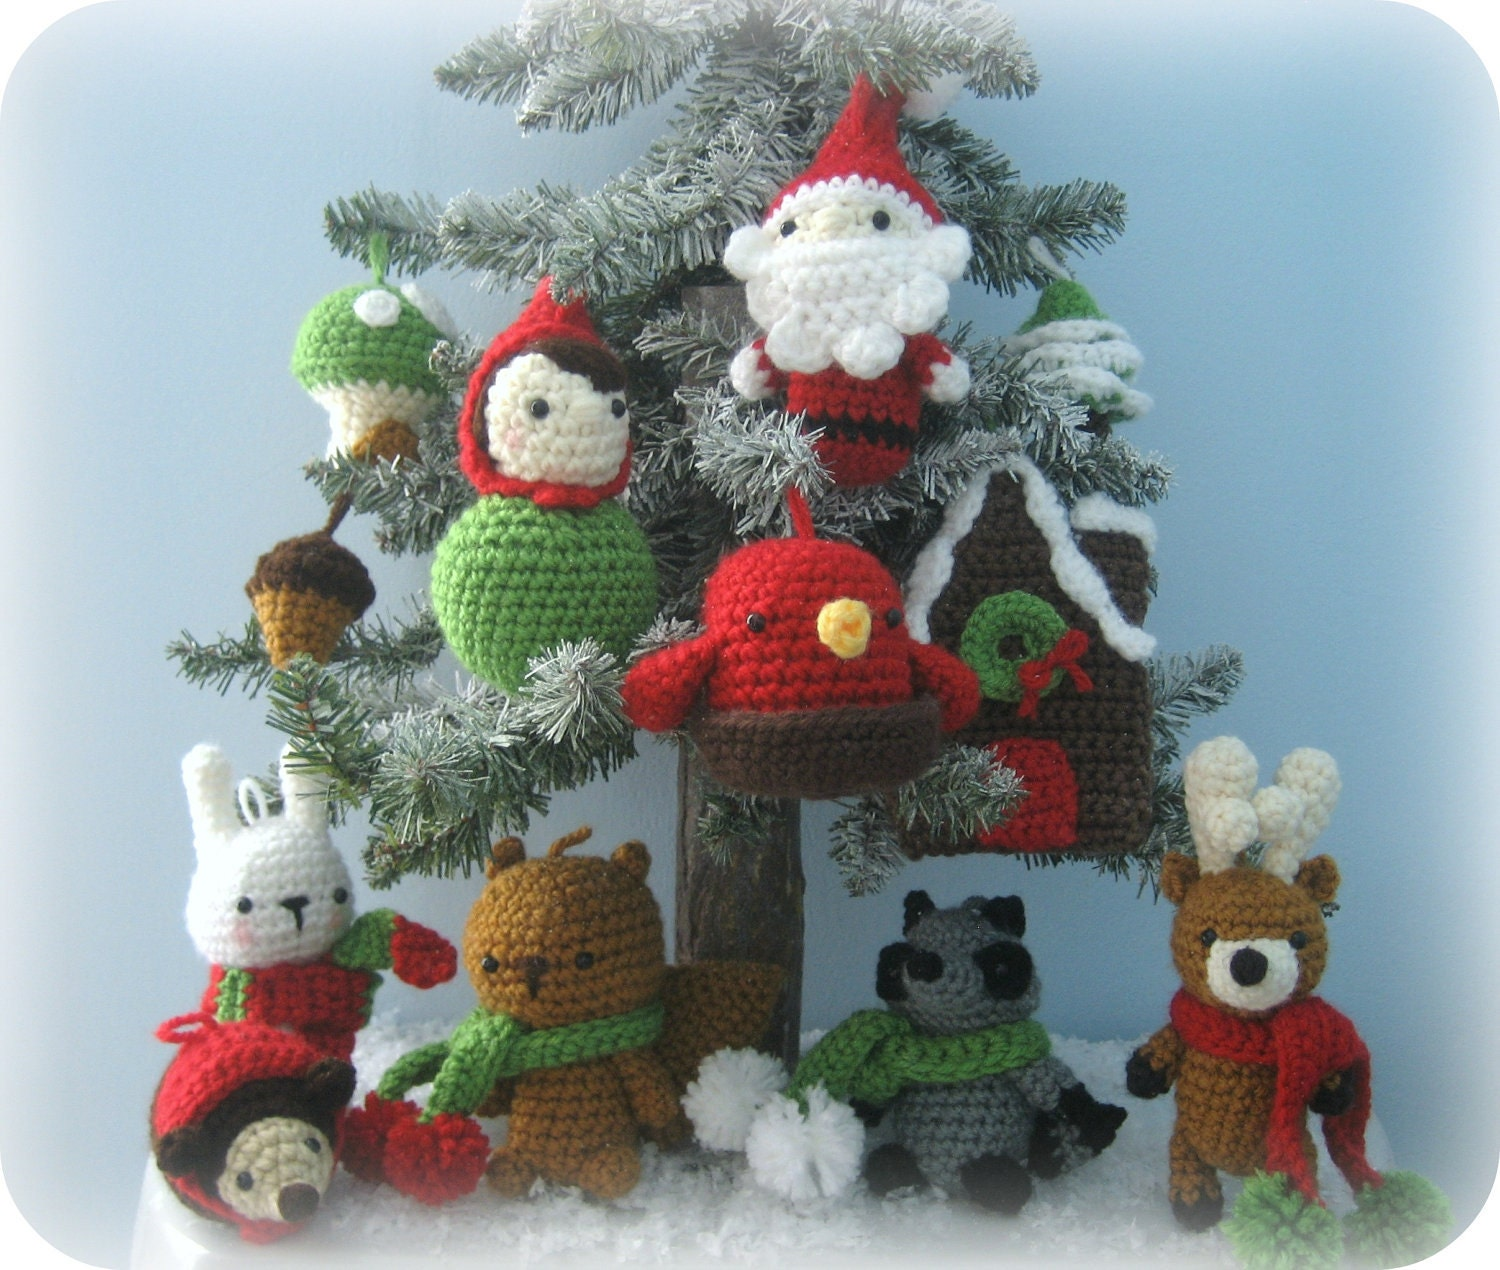 Crochet Ornaments : Amigurumi Crochet Woodland Christmas Ornament Pattern by AmyGaines